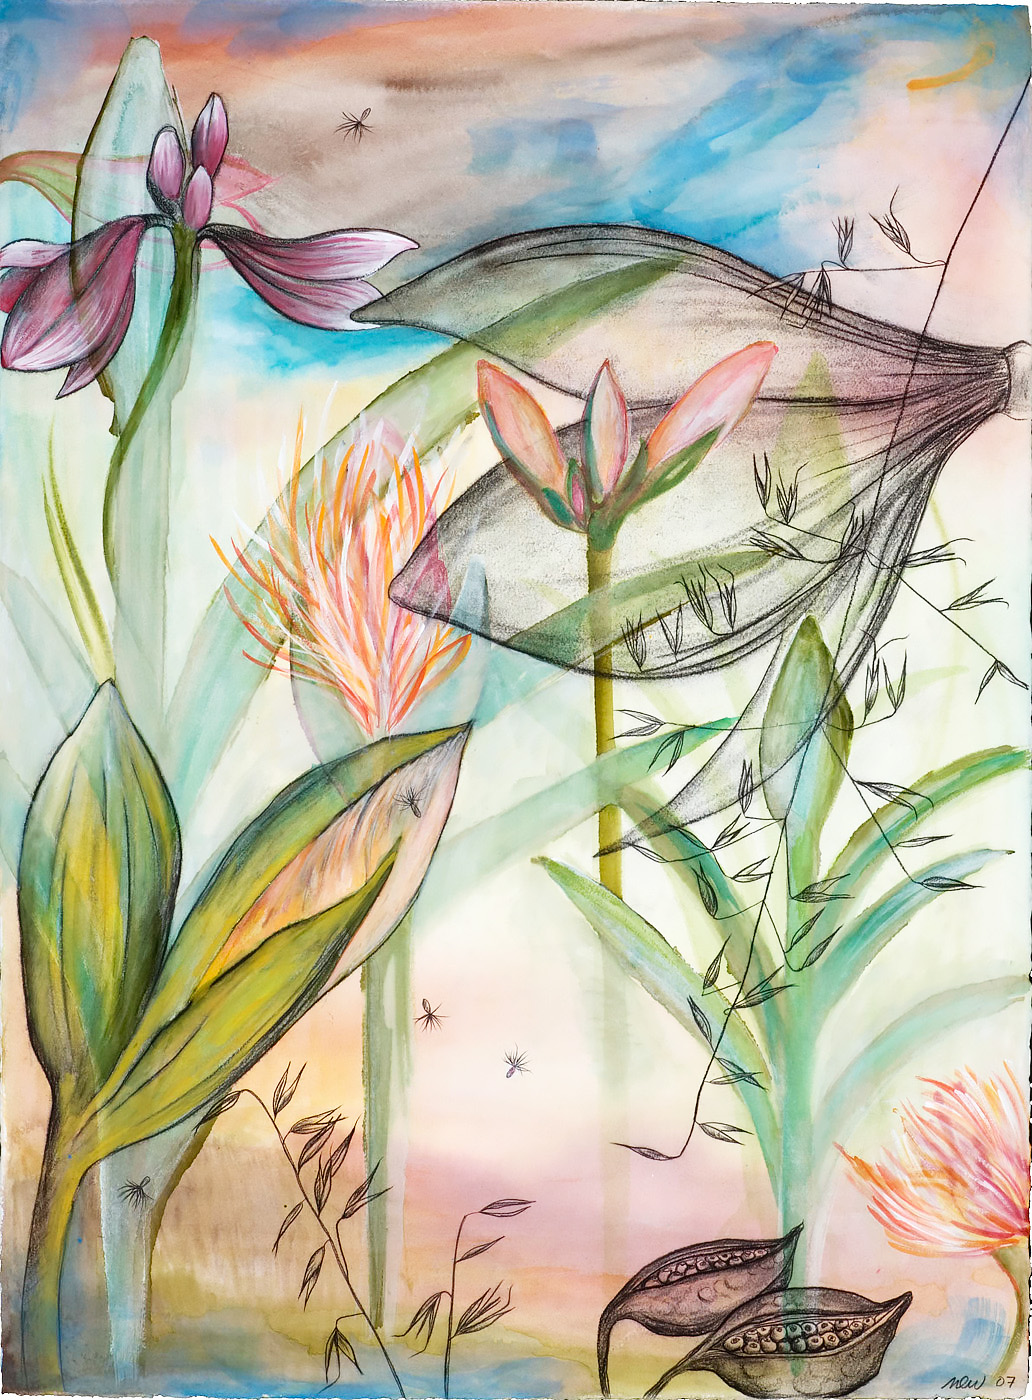 Garden Variety #2 Watercolor, ink, and charcoal on paper, 22 x 30 inches